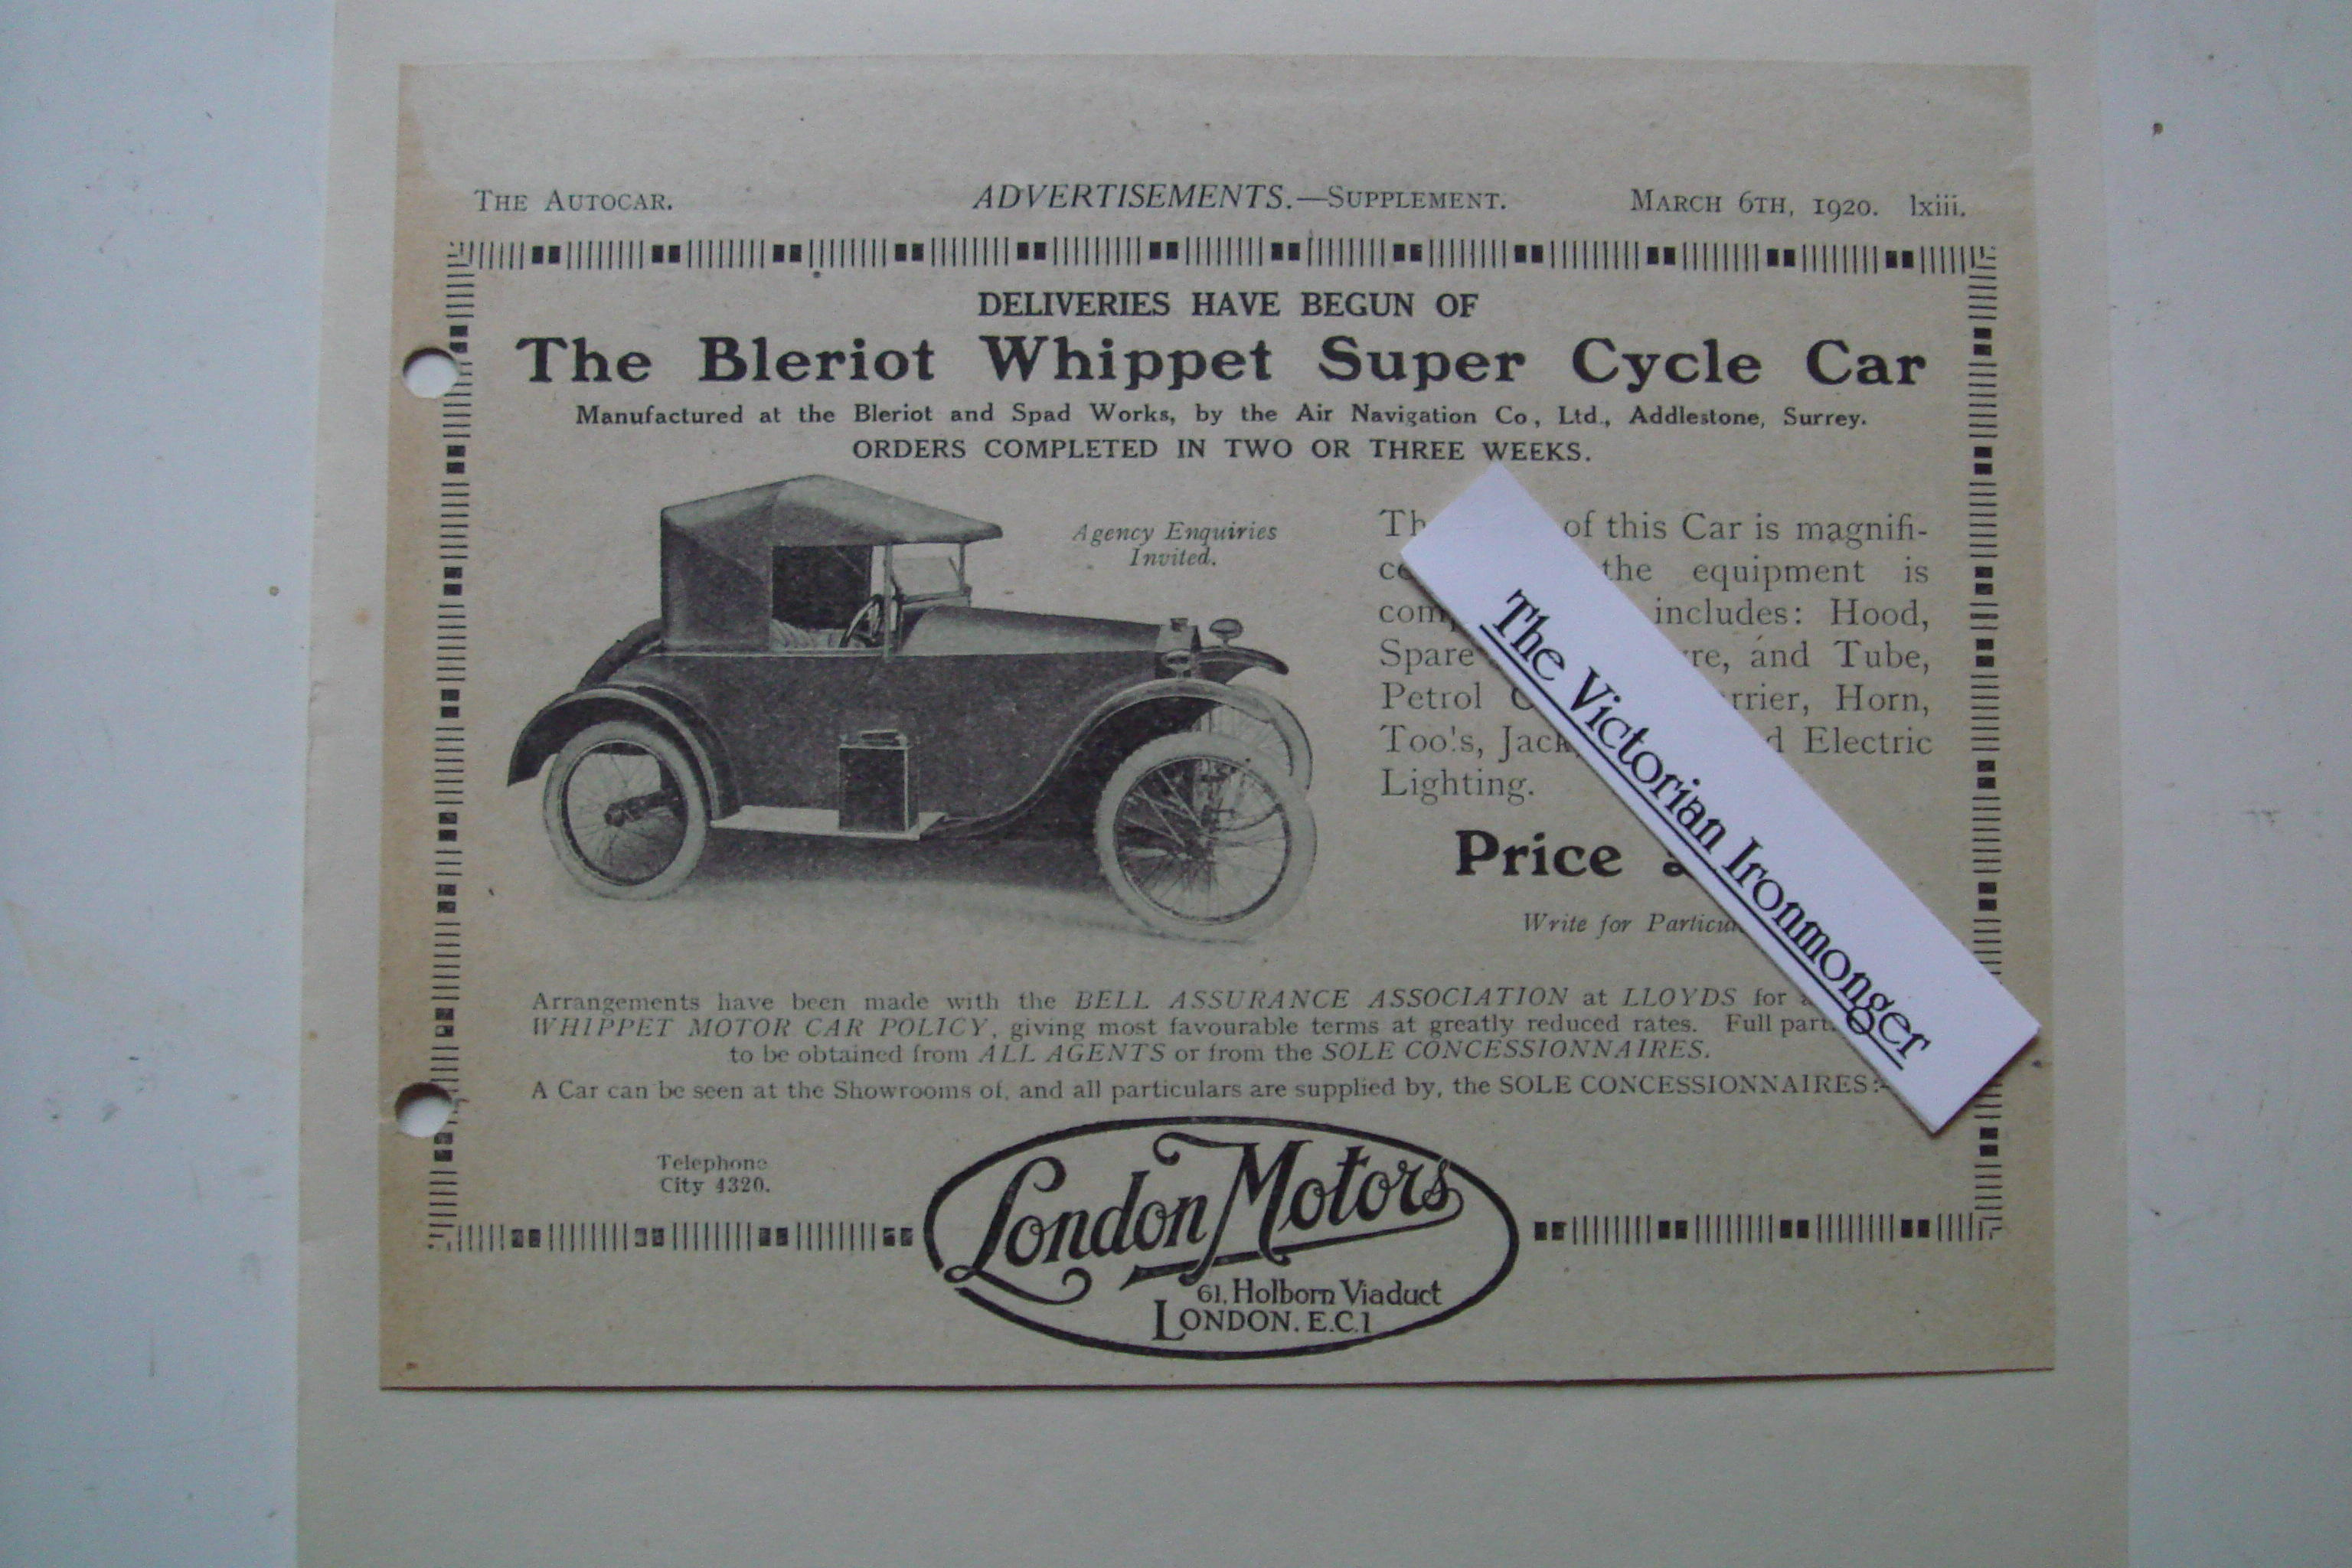 1920 Priced Advertisement for The Bleriot Whippet Super Cycle Car.